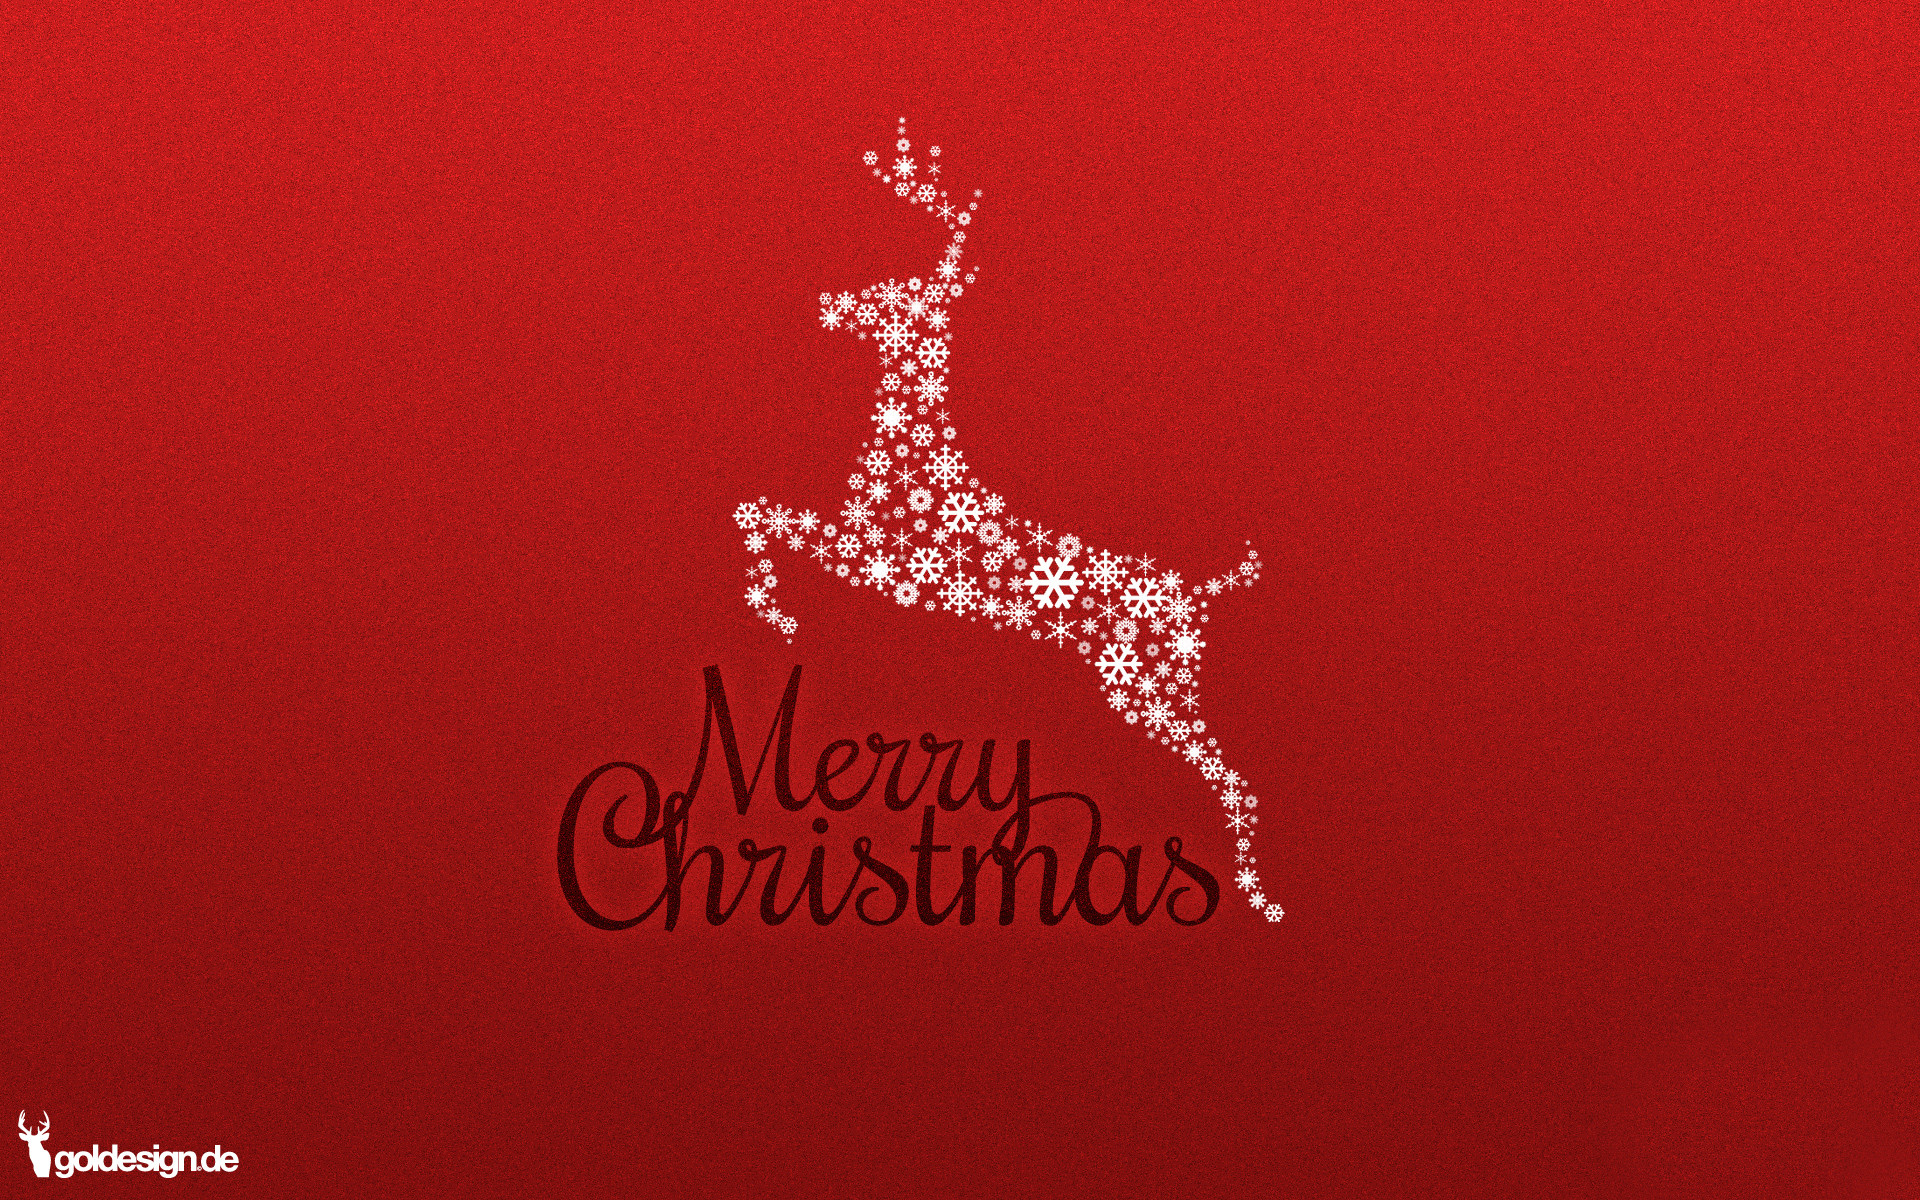 2011 Merry Christmas Wallpapers | HD Wallpapers